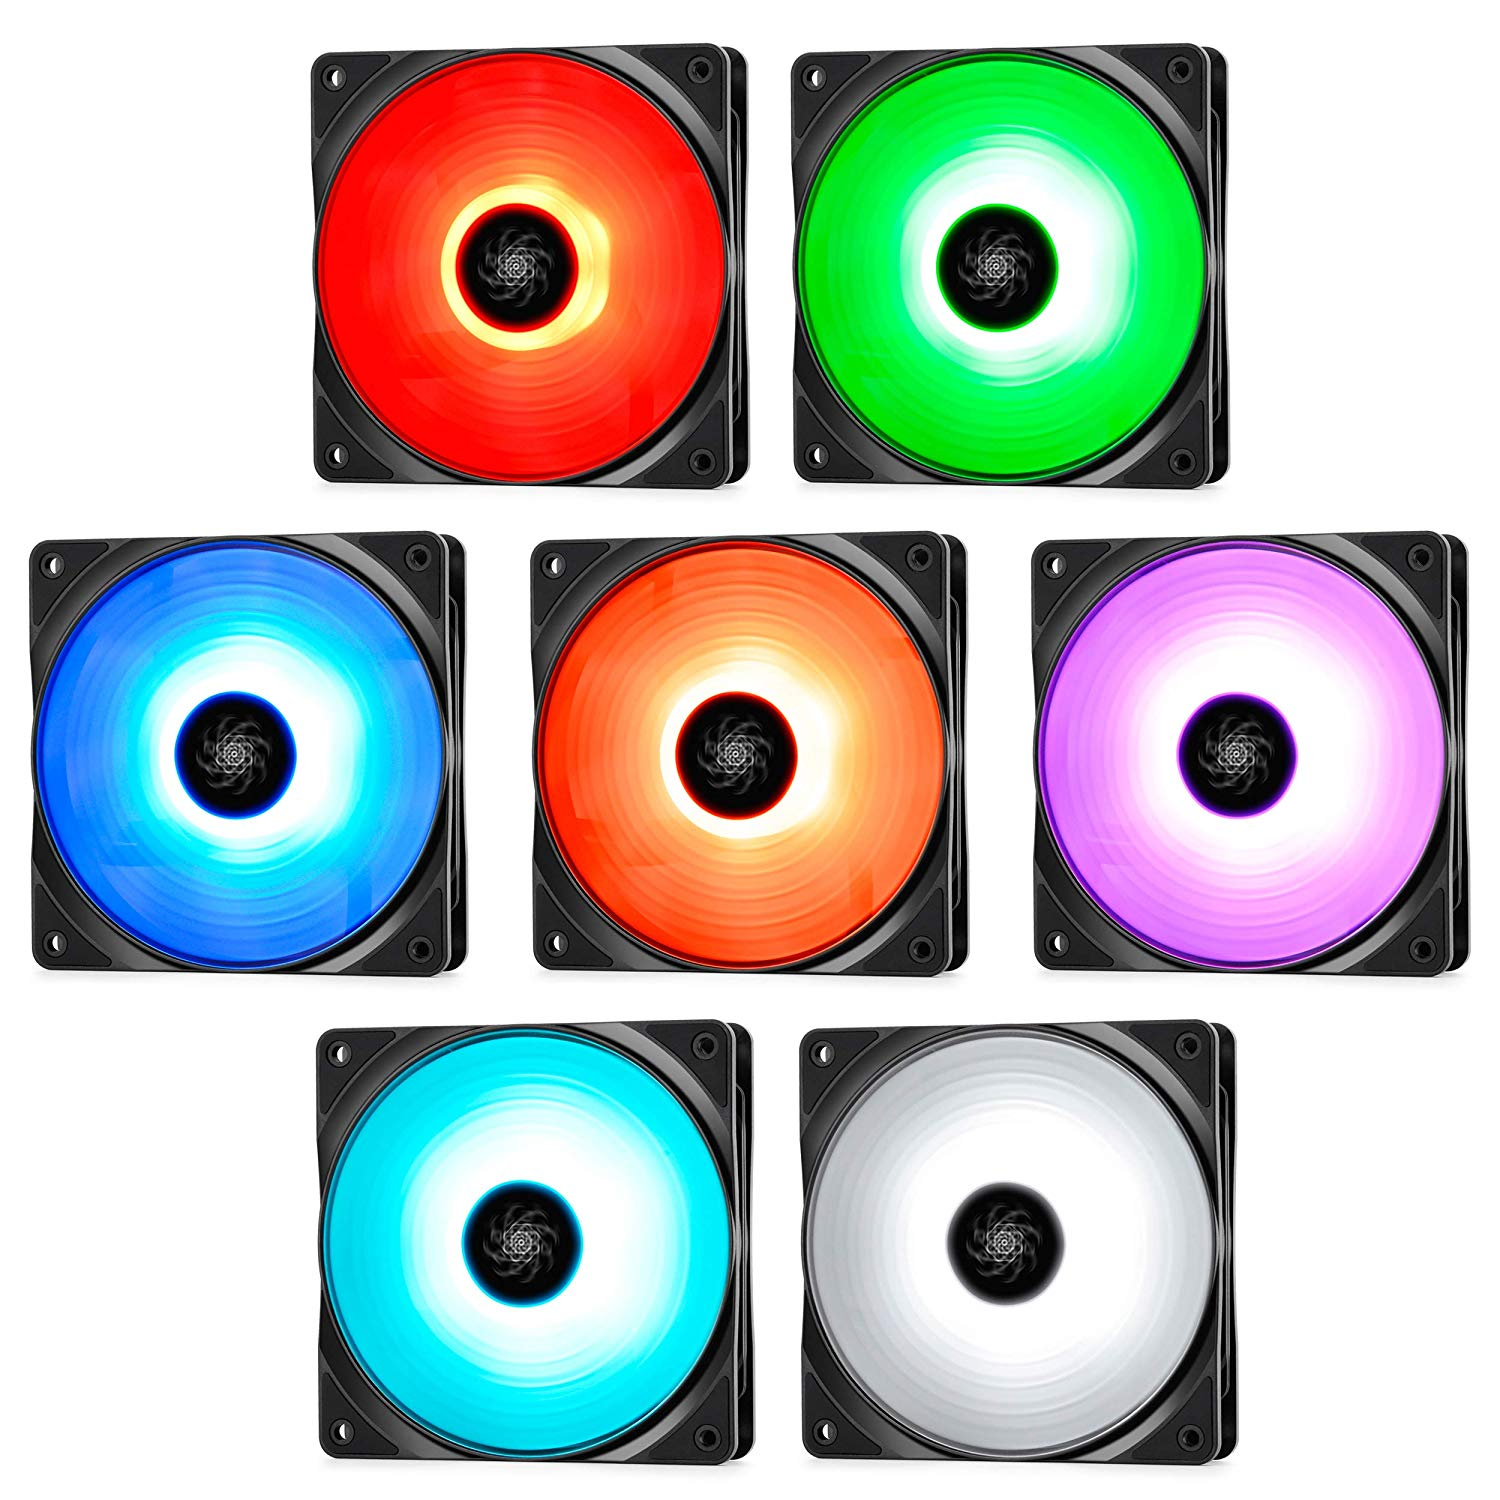 Deepcool RF120M 5 IN1, 5x120mm RGB PWM Fans with 2 Fan Hubs, Compatible  With ASUS Aura Sync, Controlled by Motherboard with 12V 4-pin RGB Header,  No